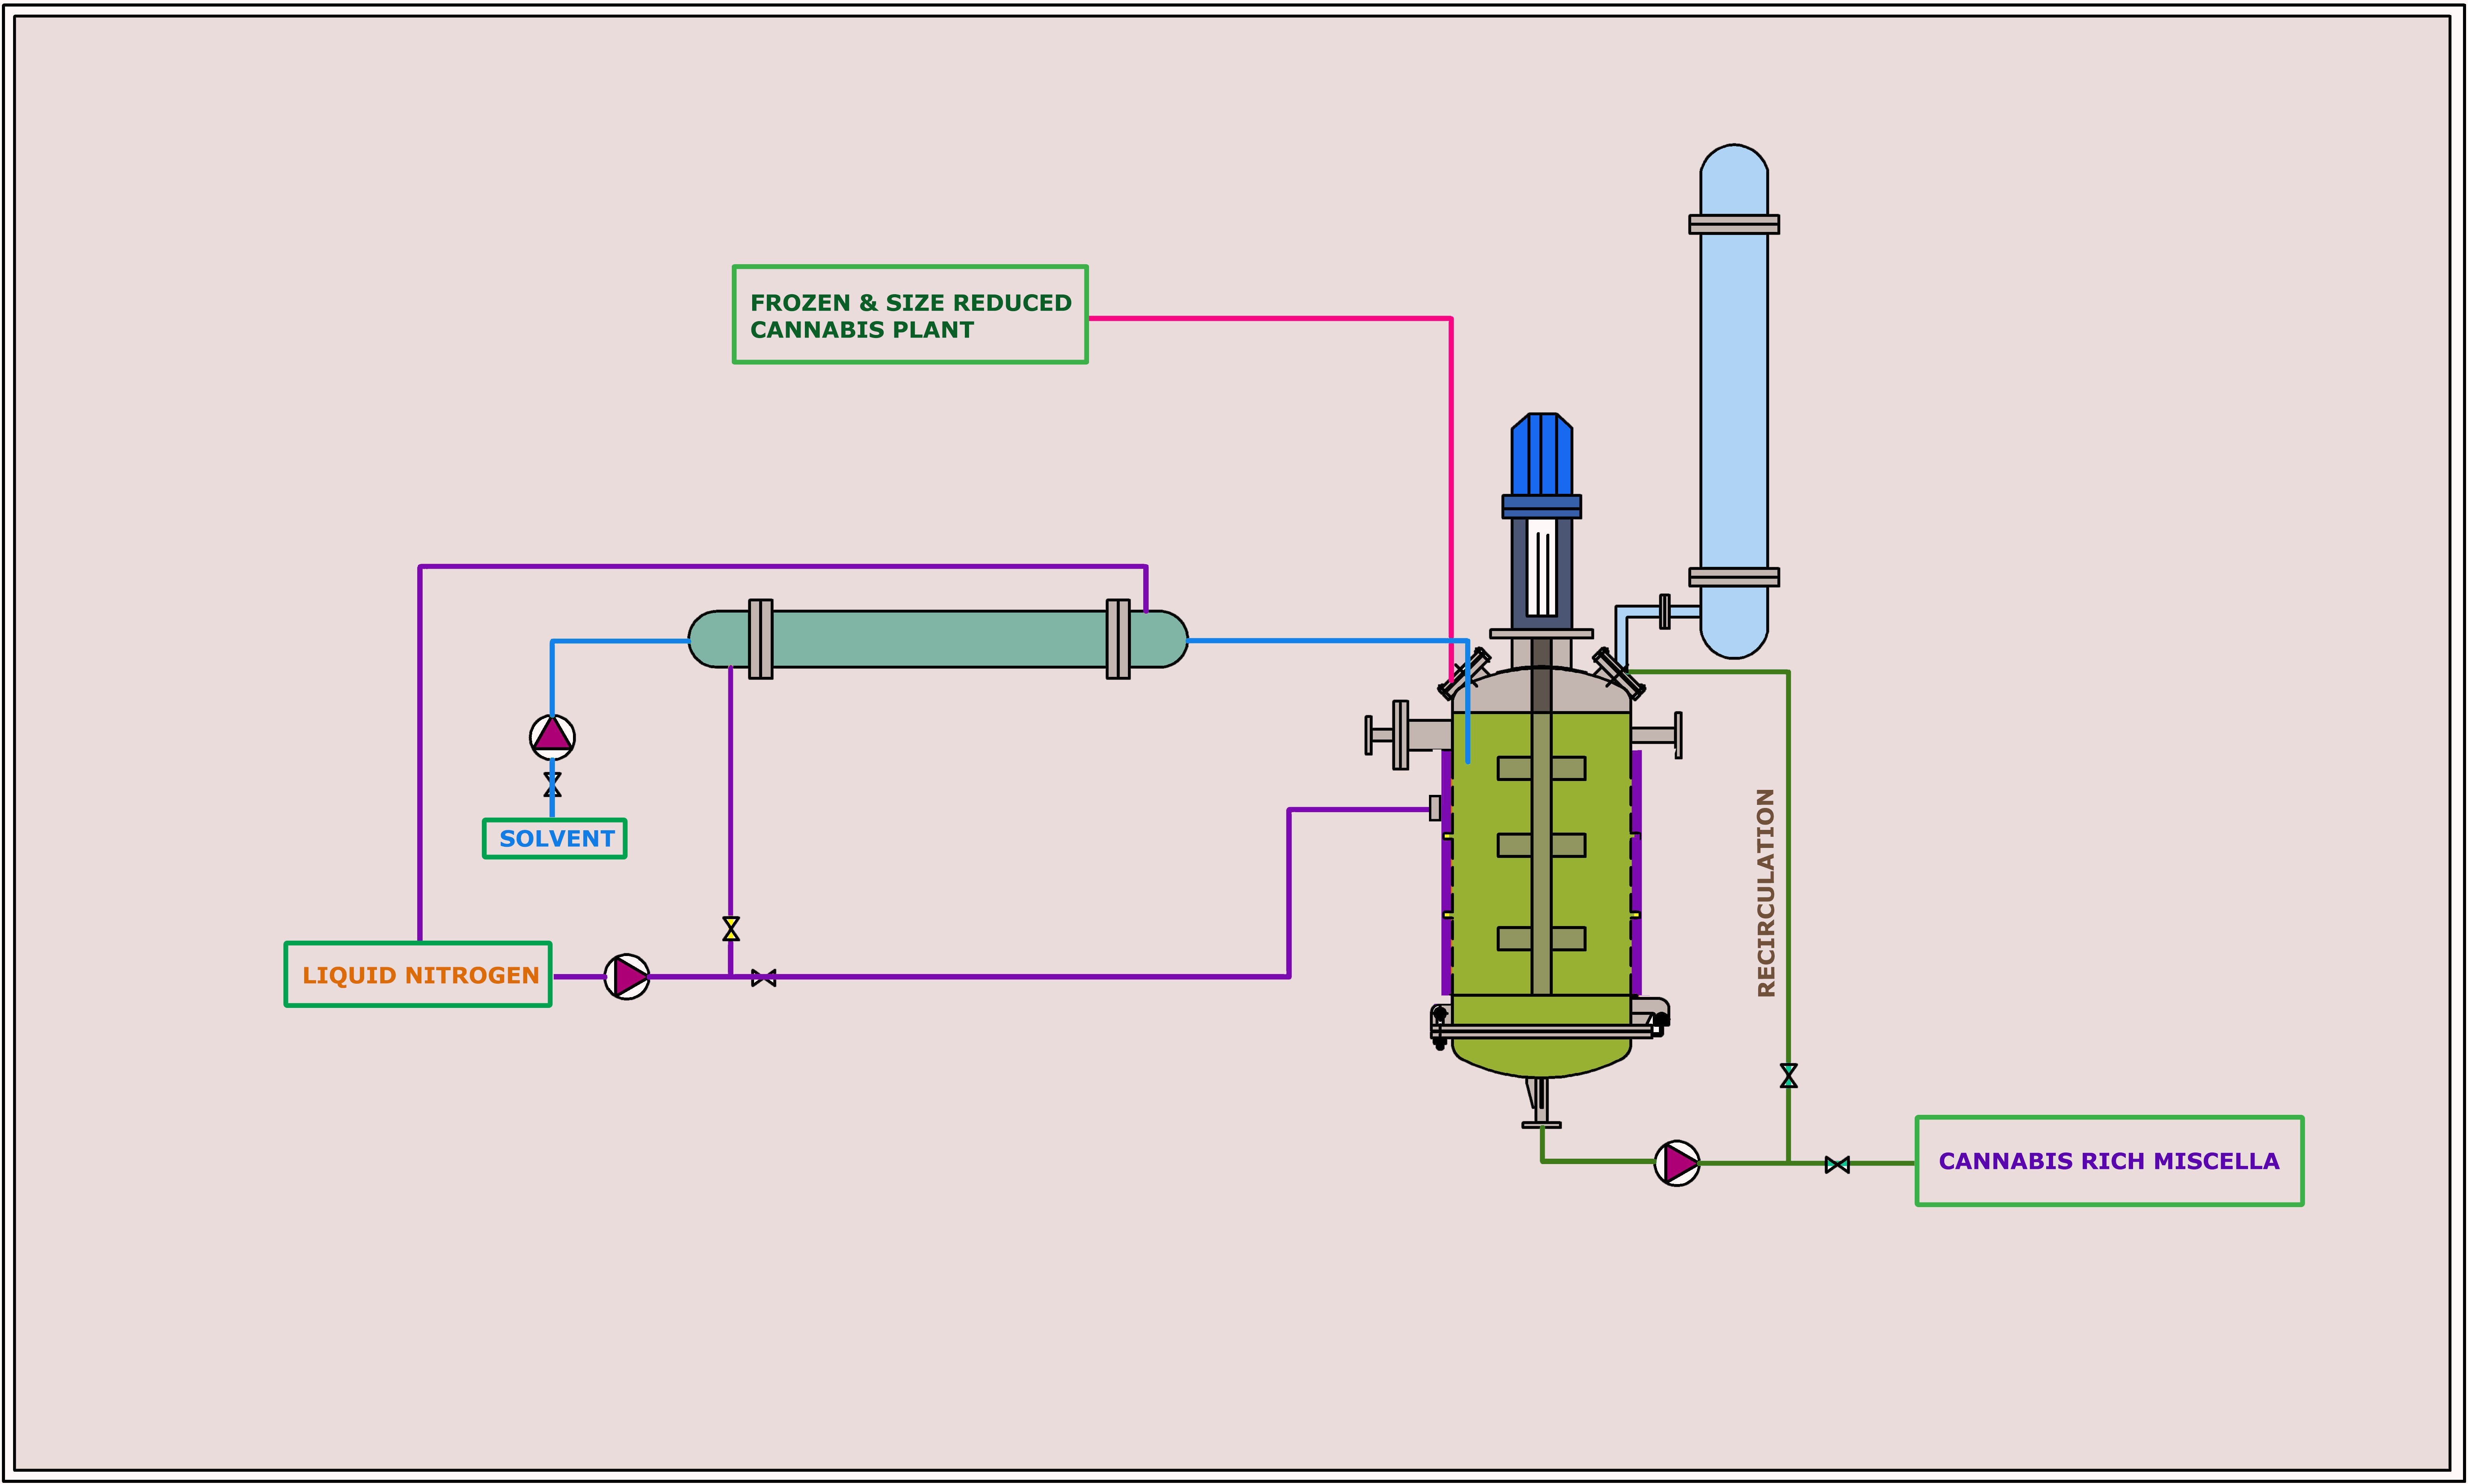 Efficient Cryogenic Method of Extracting Total Cannabinoids